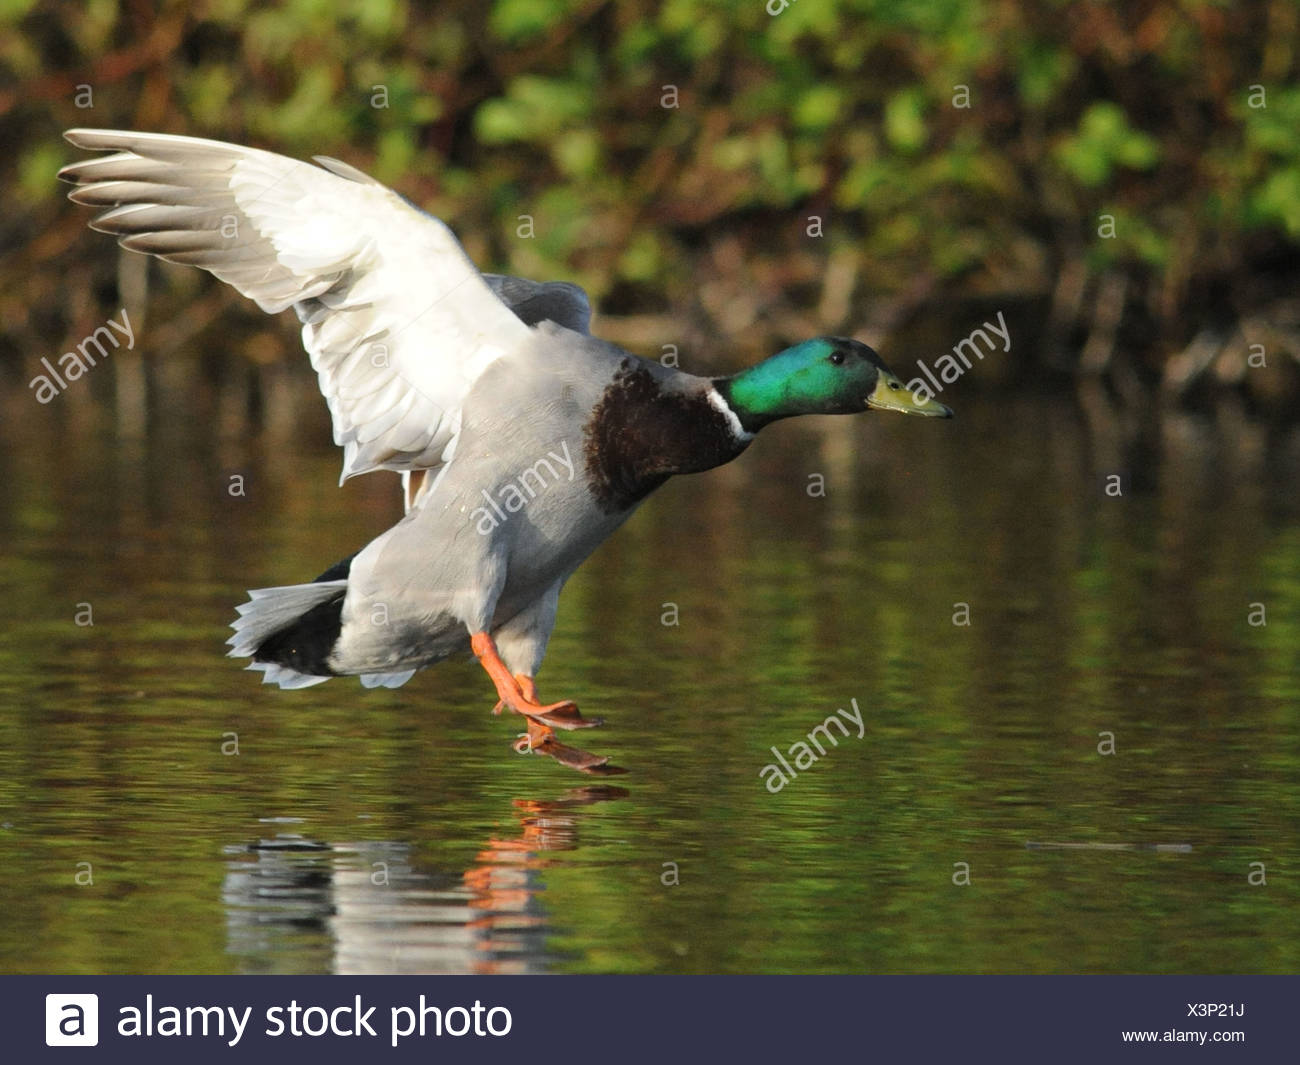 A male mallard coming in to land, home to roost. - Stock Image